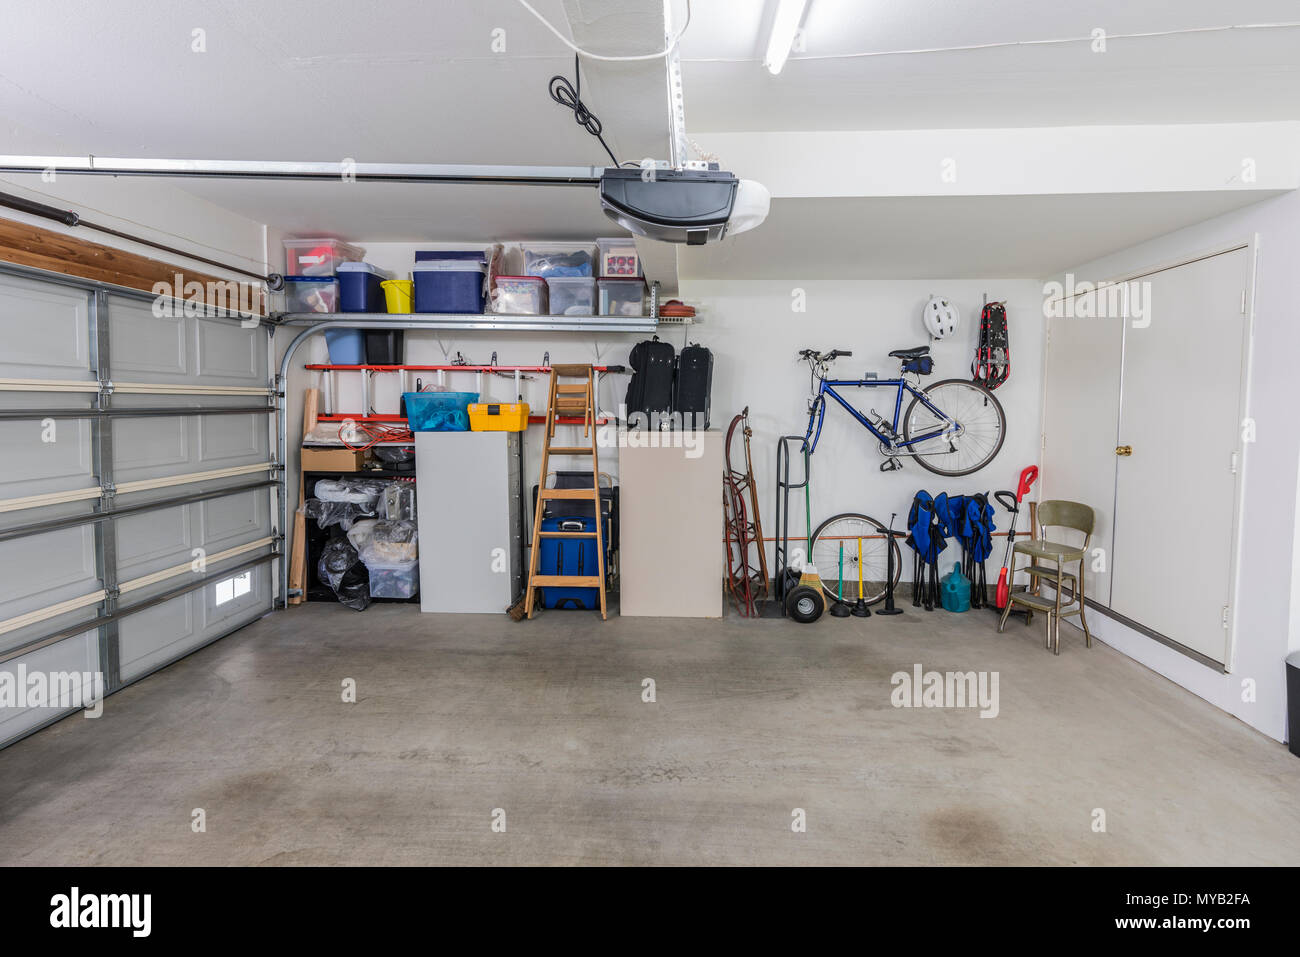 Organized clean suburban residential two car garage with tools, file cabinets and sports equipment. - Stock Image